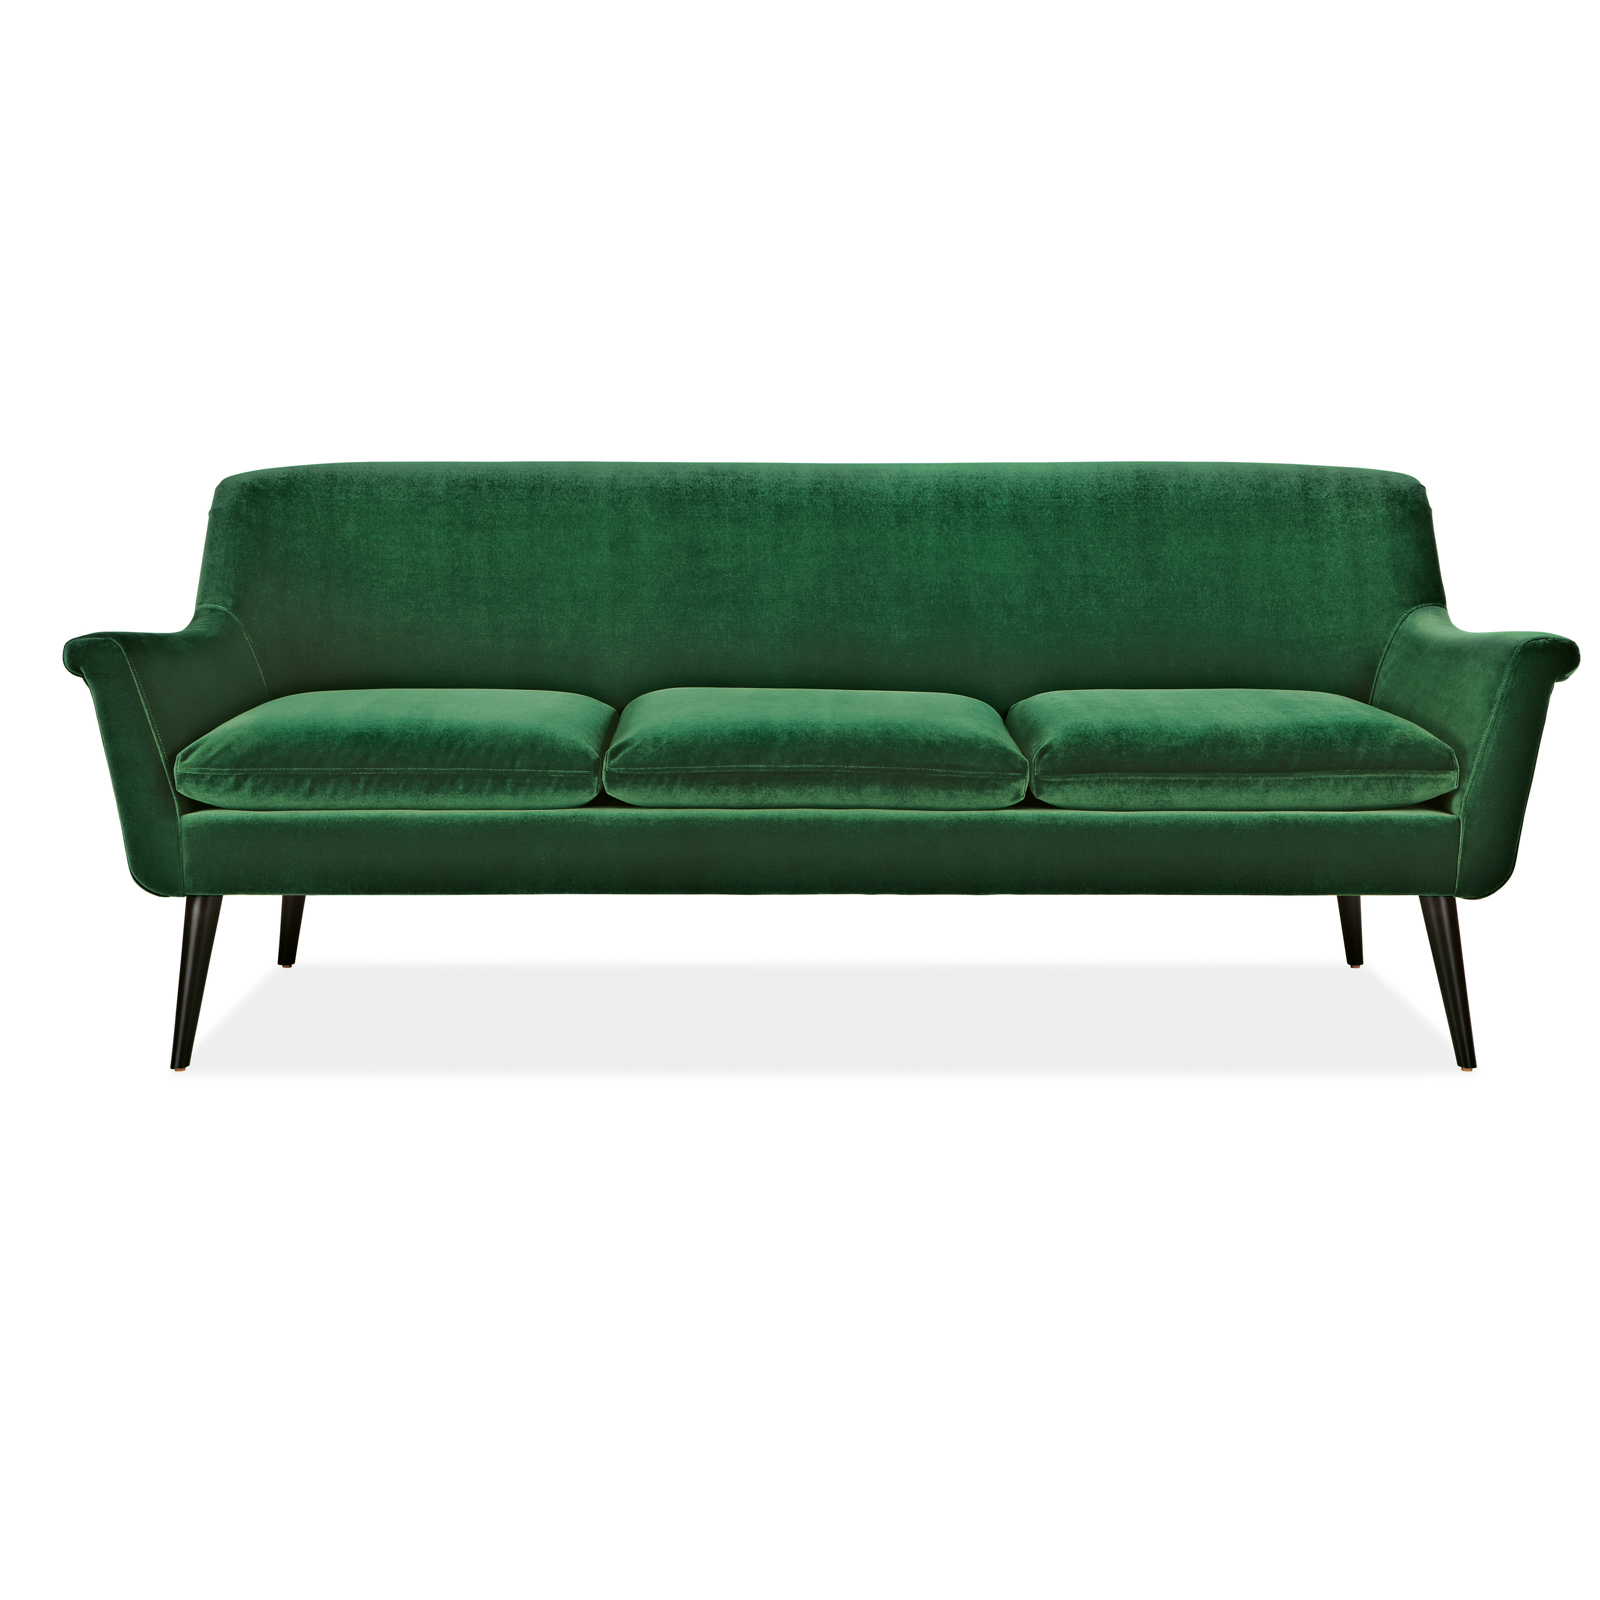 Murphy 81-inch sofa by Room & Board, $1,399